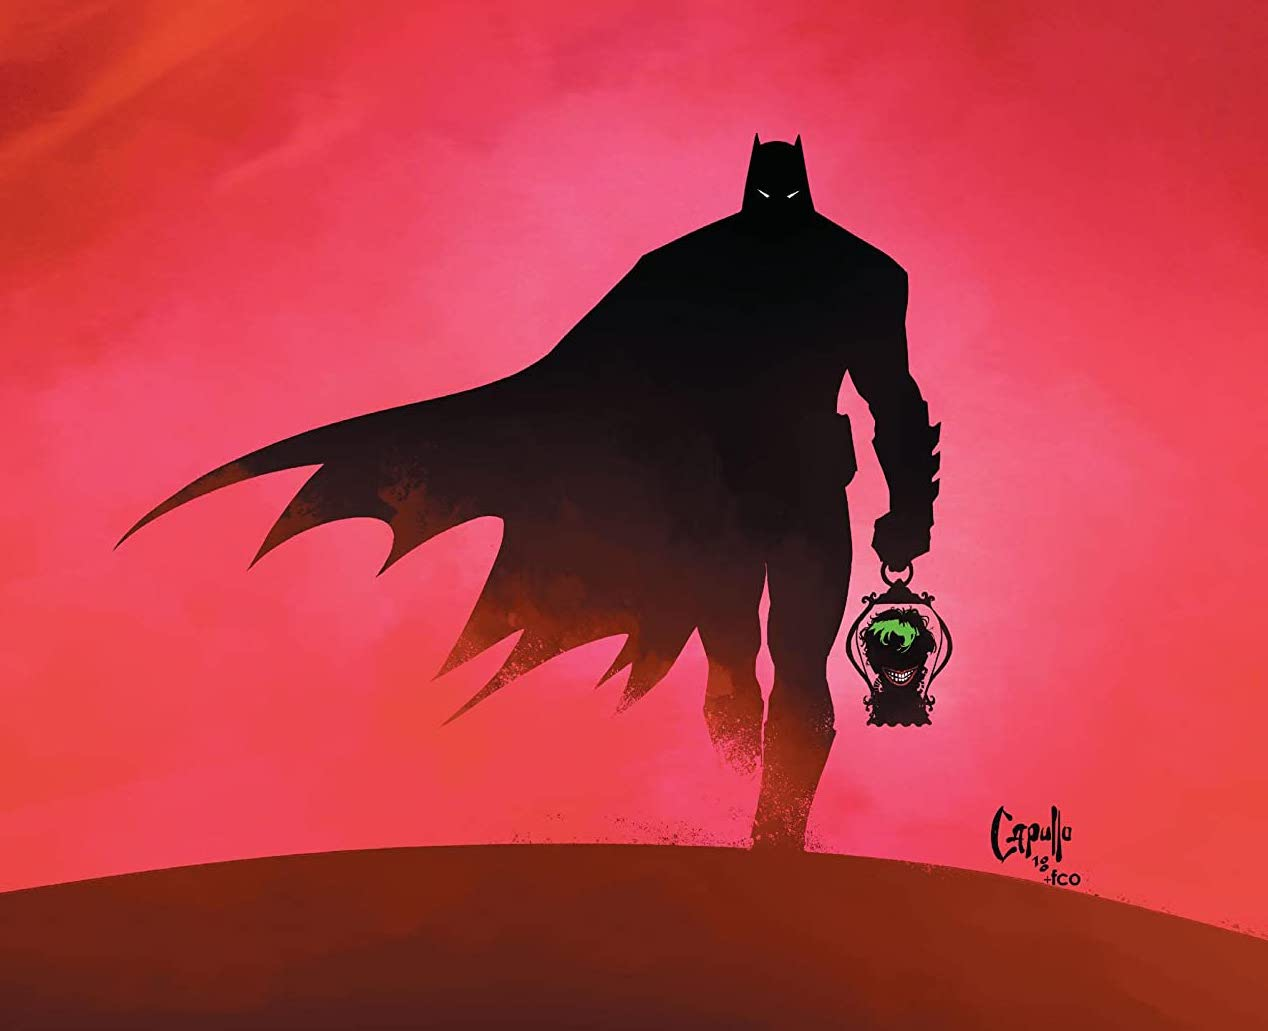 The beginning of Scott Snyder and Greg Capullo's 'final' Batman story can now be read online for free.